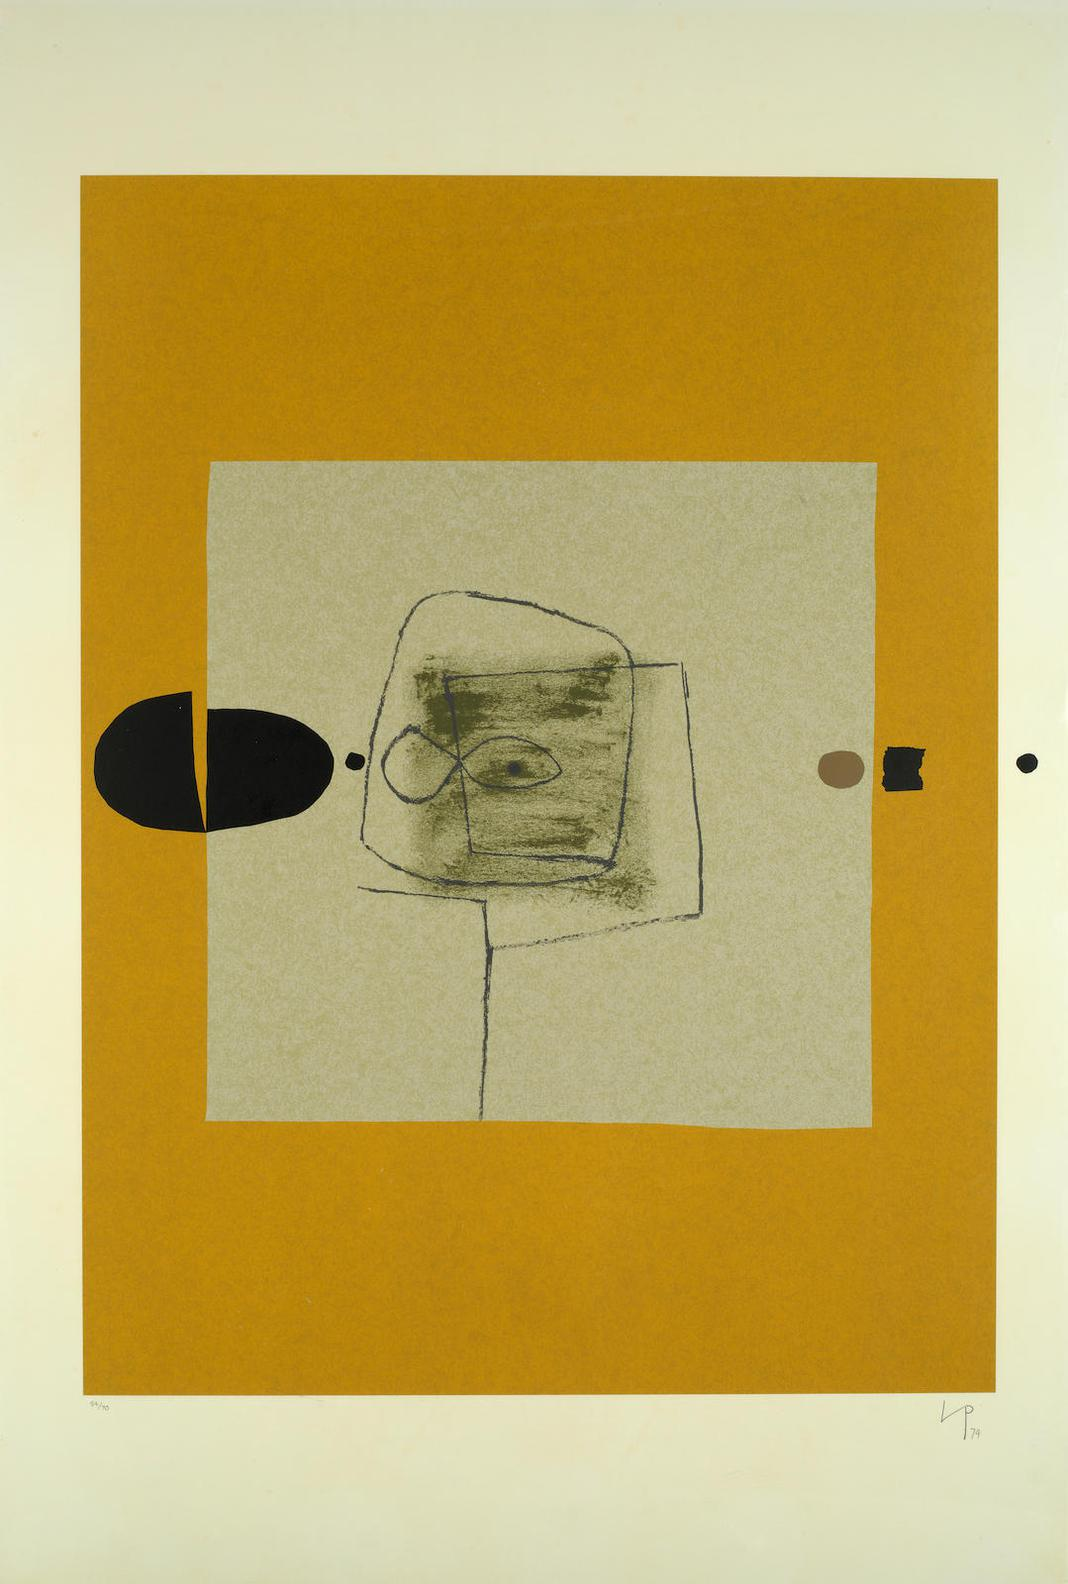 Victor Pasmore-Point Of Contact No. 27-1974